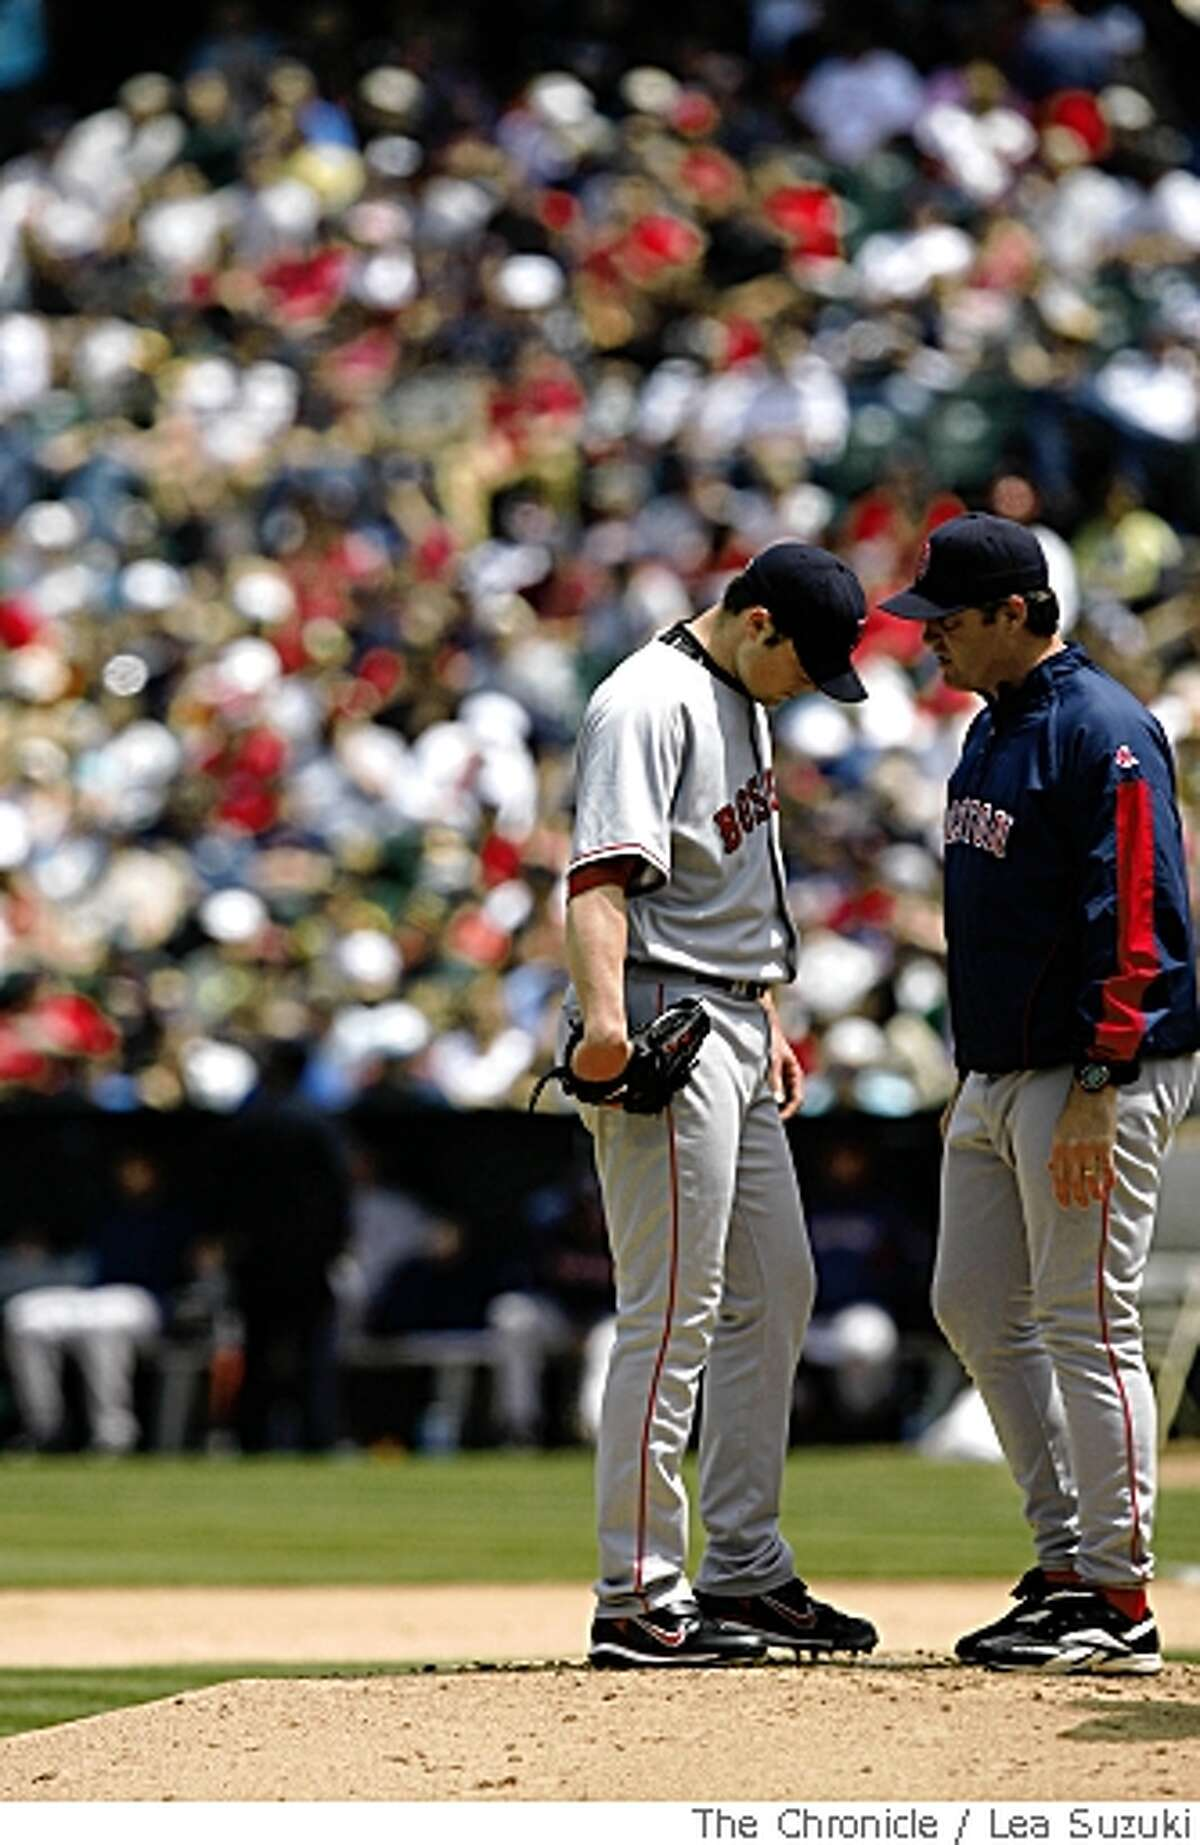 Pitcher Jon Lester (left) in a discussion on the mound in the bottom of the fourth in Oakland, Calif. on Sunday, May 25 2008 during the Oakland Athletics vs Boston Red Sox game. Final Score of the game: Oakland 6 vs Boston 3.Photo By Lea Suzuki/ San Francisco Chronicle